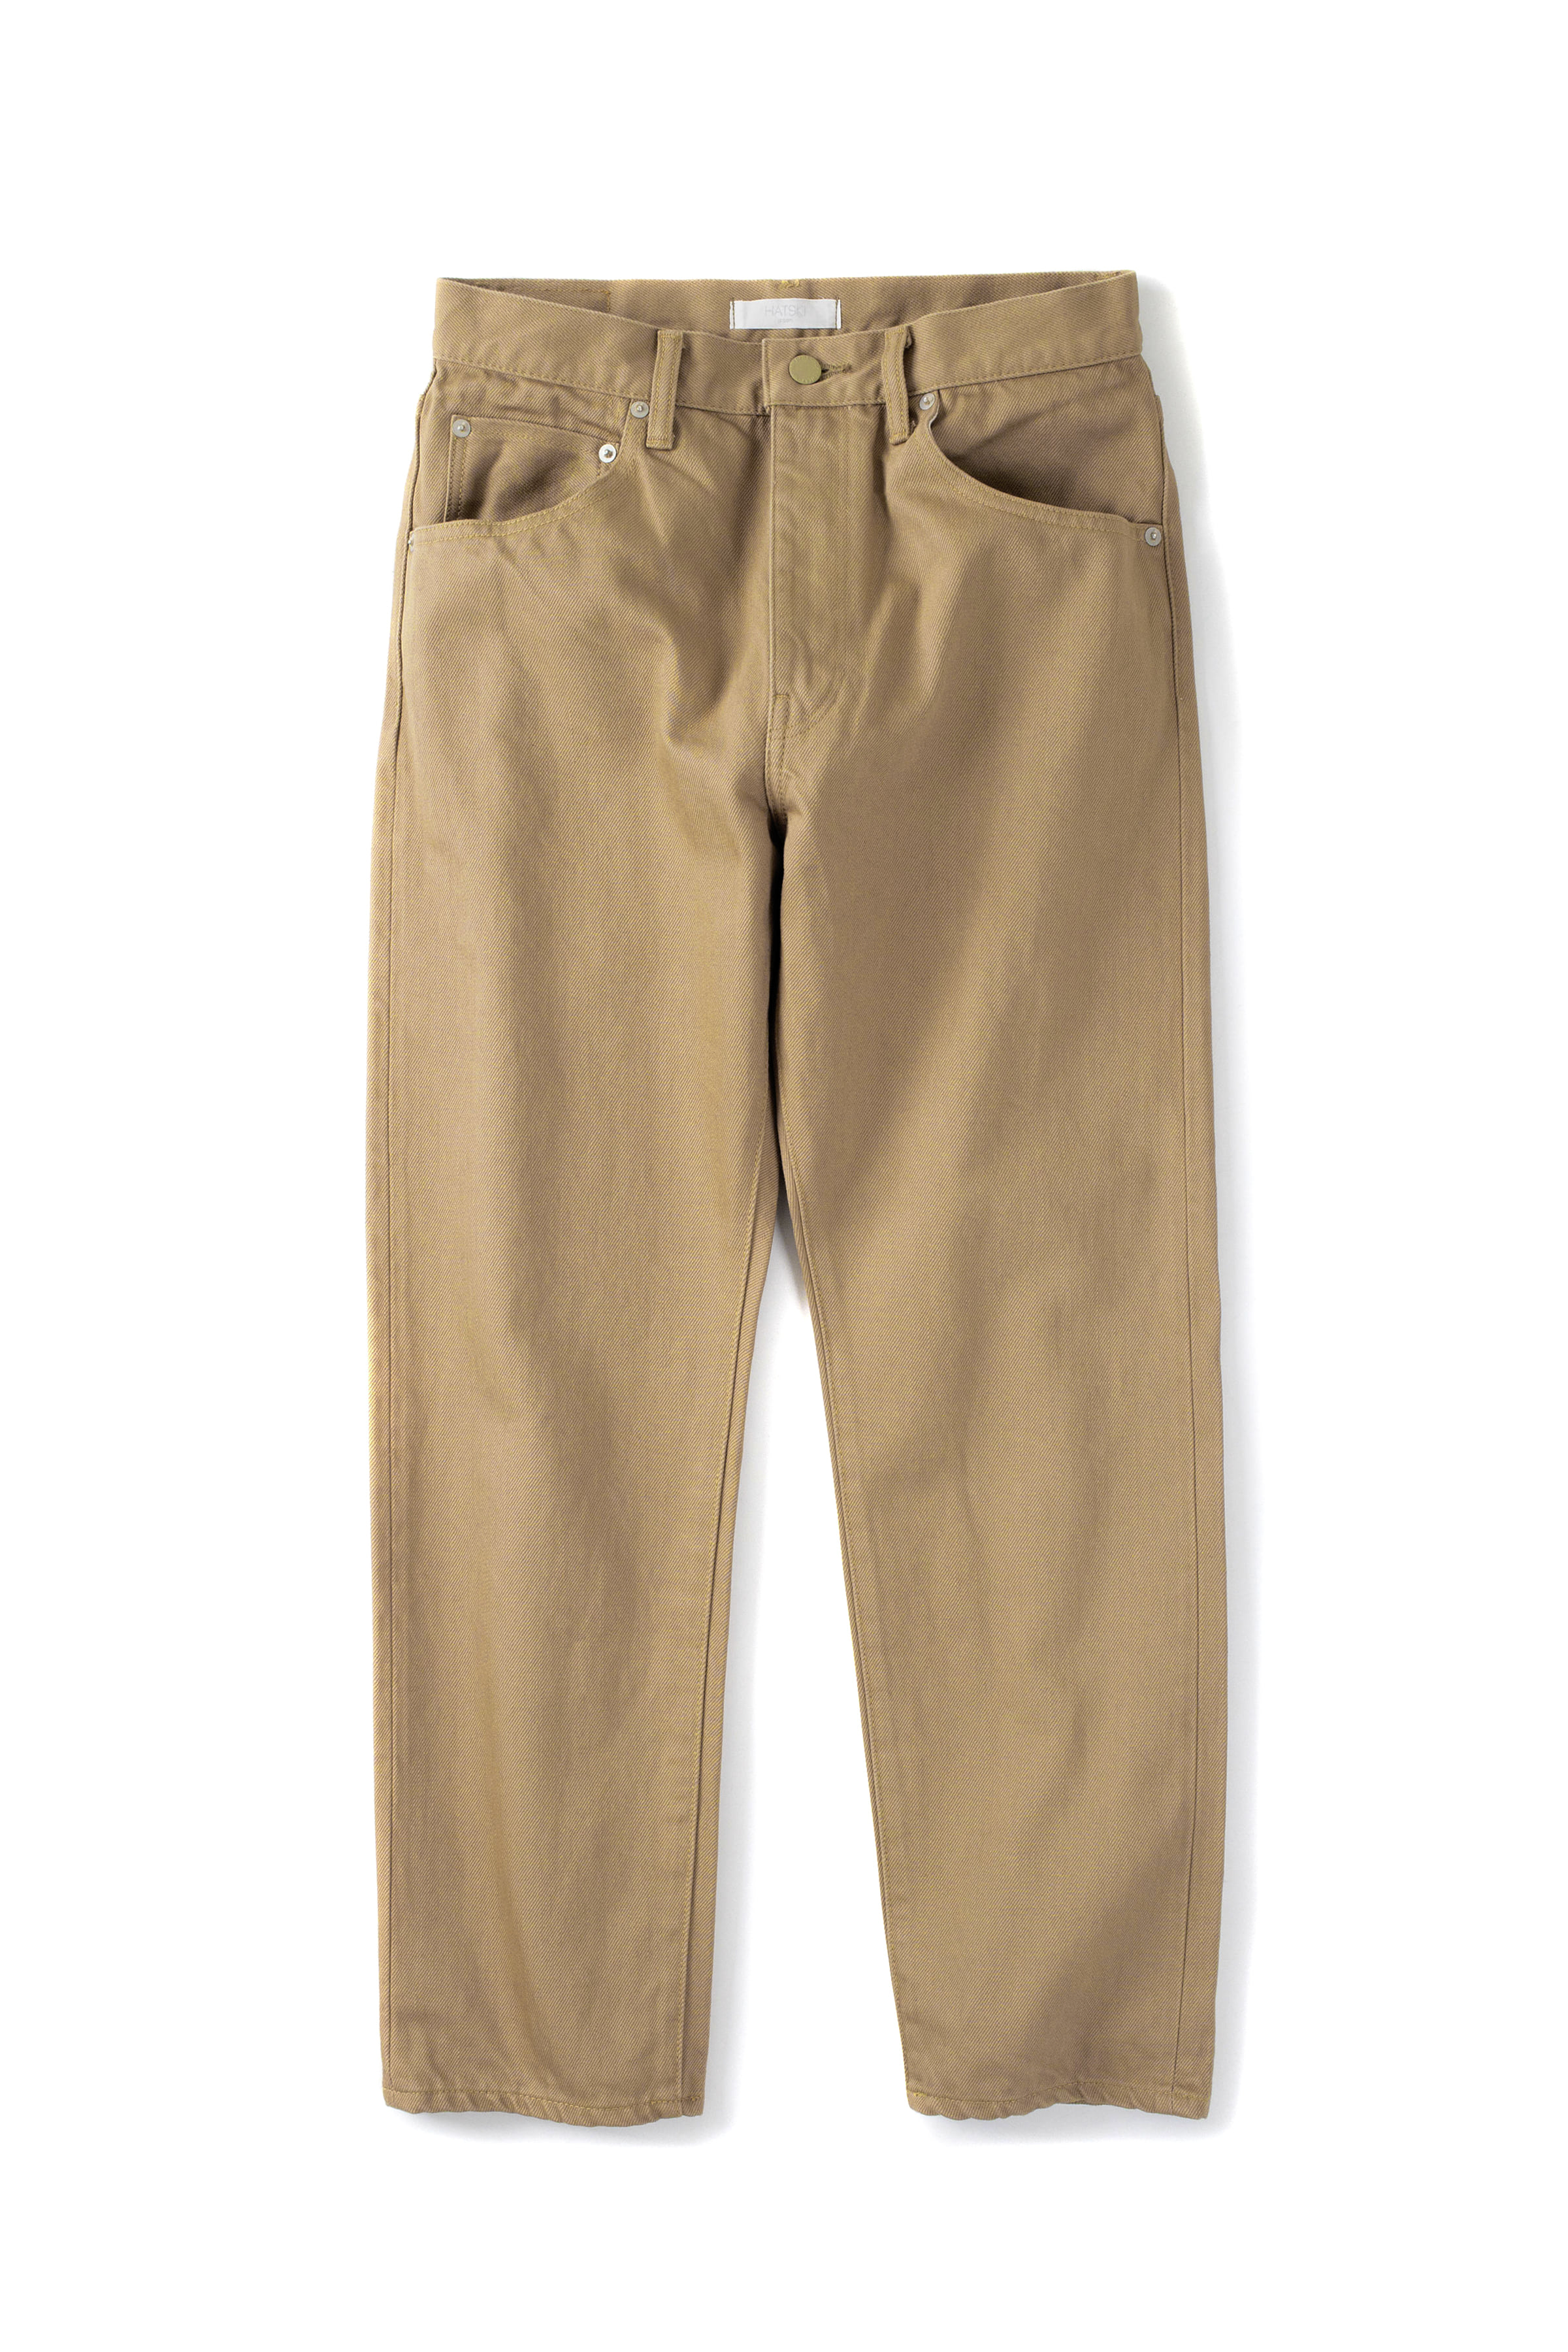 HATSKI : 18010 Regular Tapered Denim (Beige)